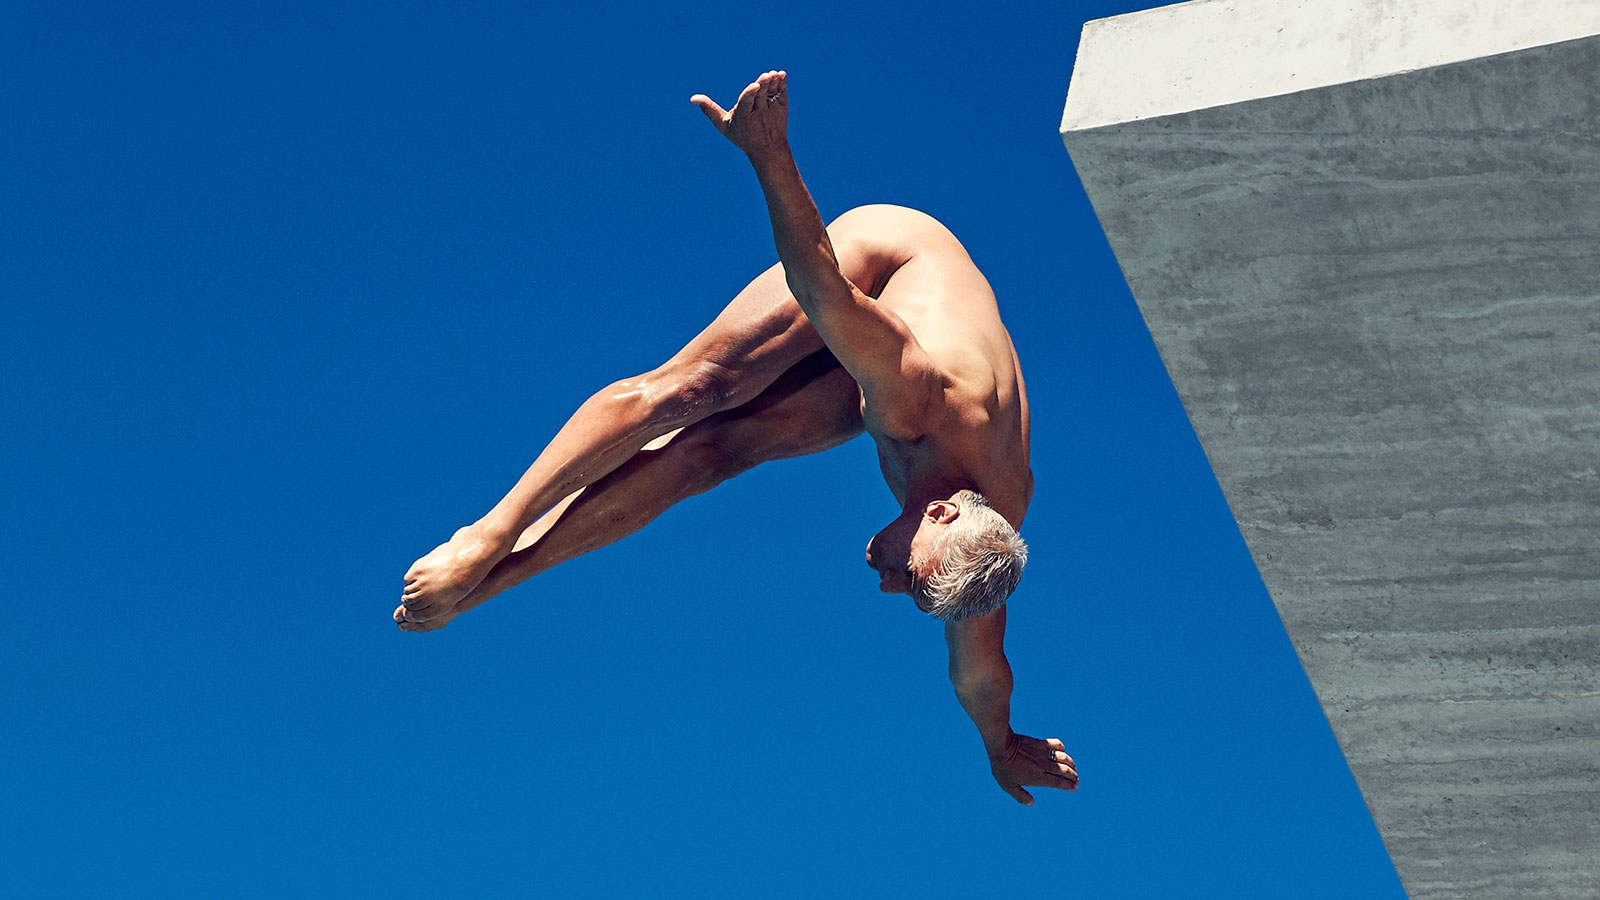 Greg Louganis, Diving, featured in the Body Issue 2016: Fully Exposed on ESPN the Magazine